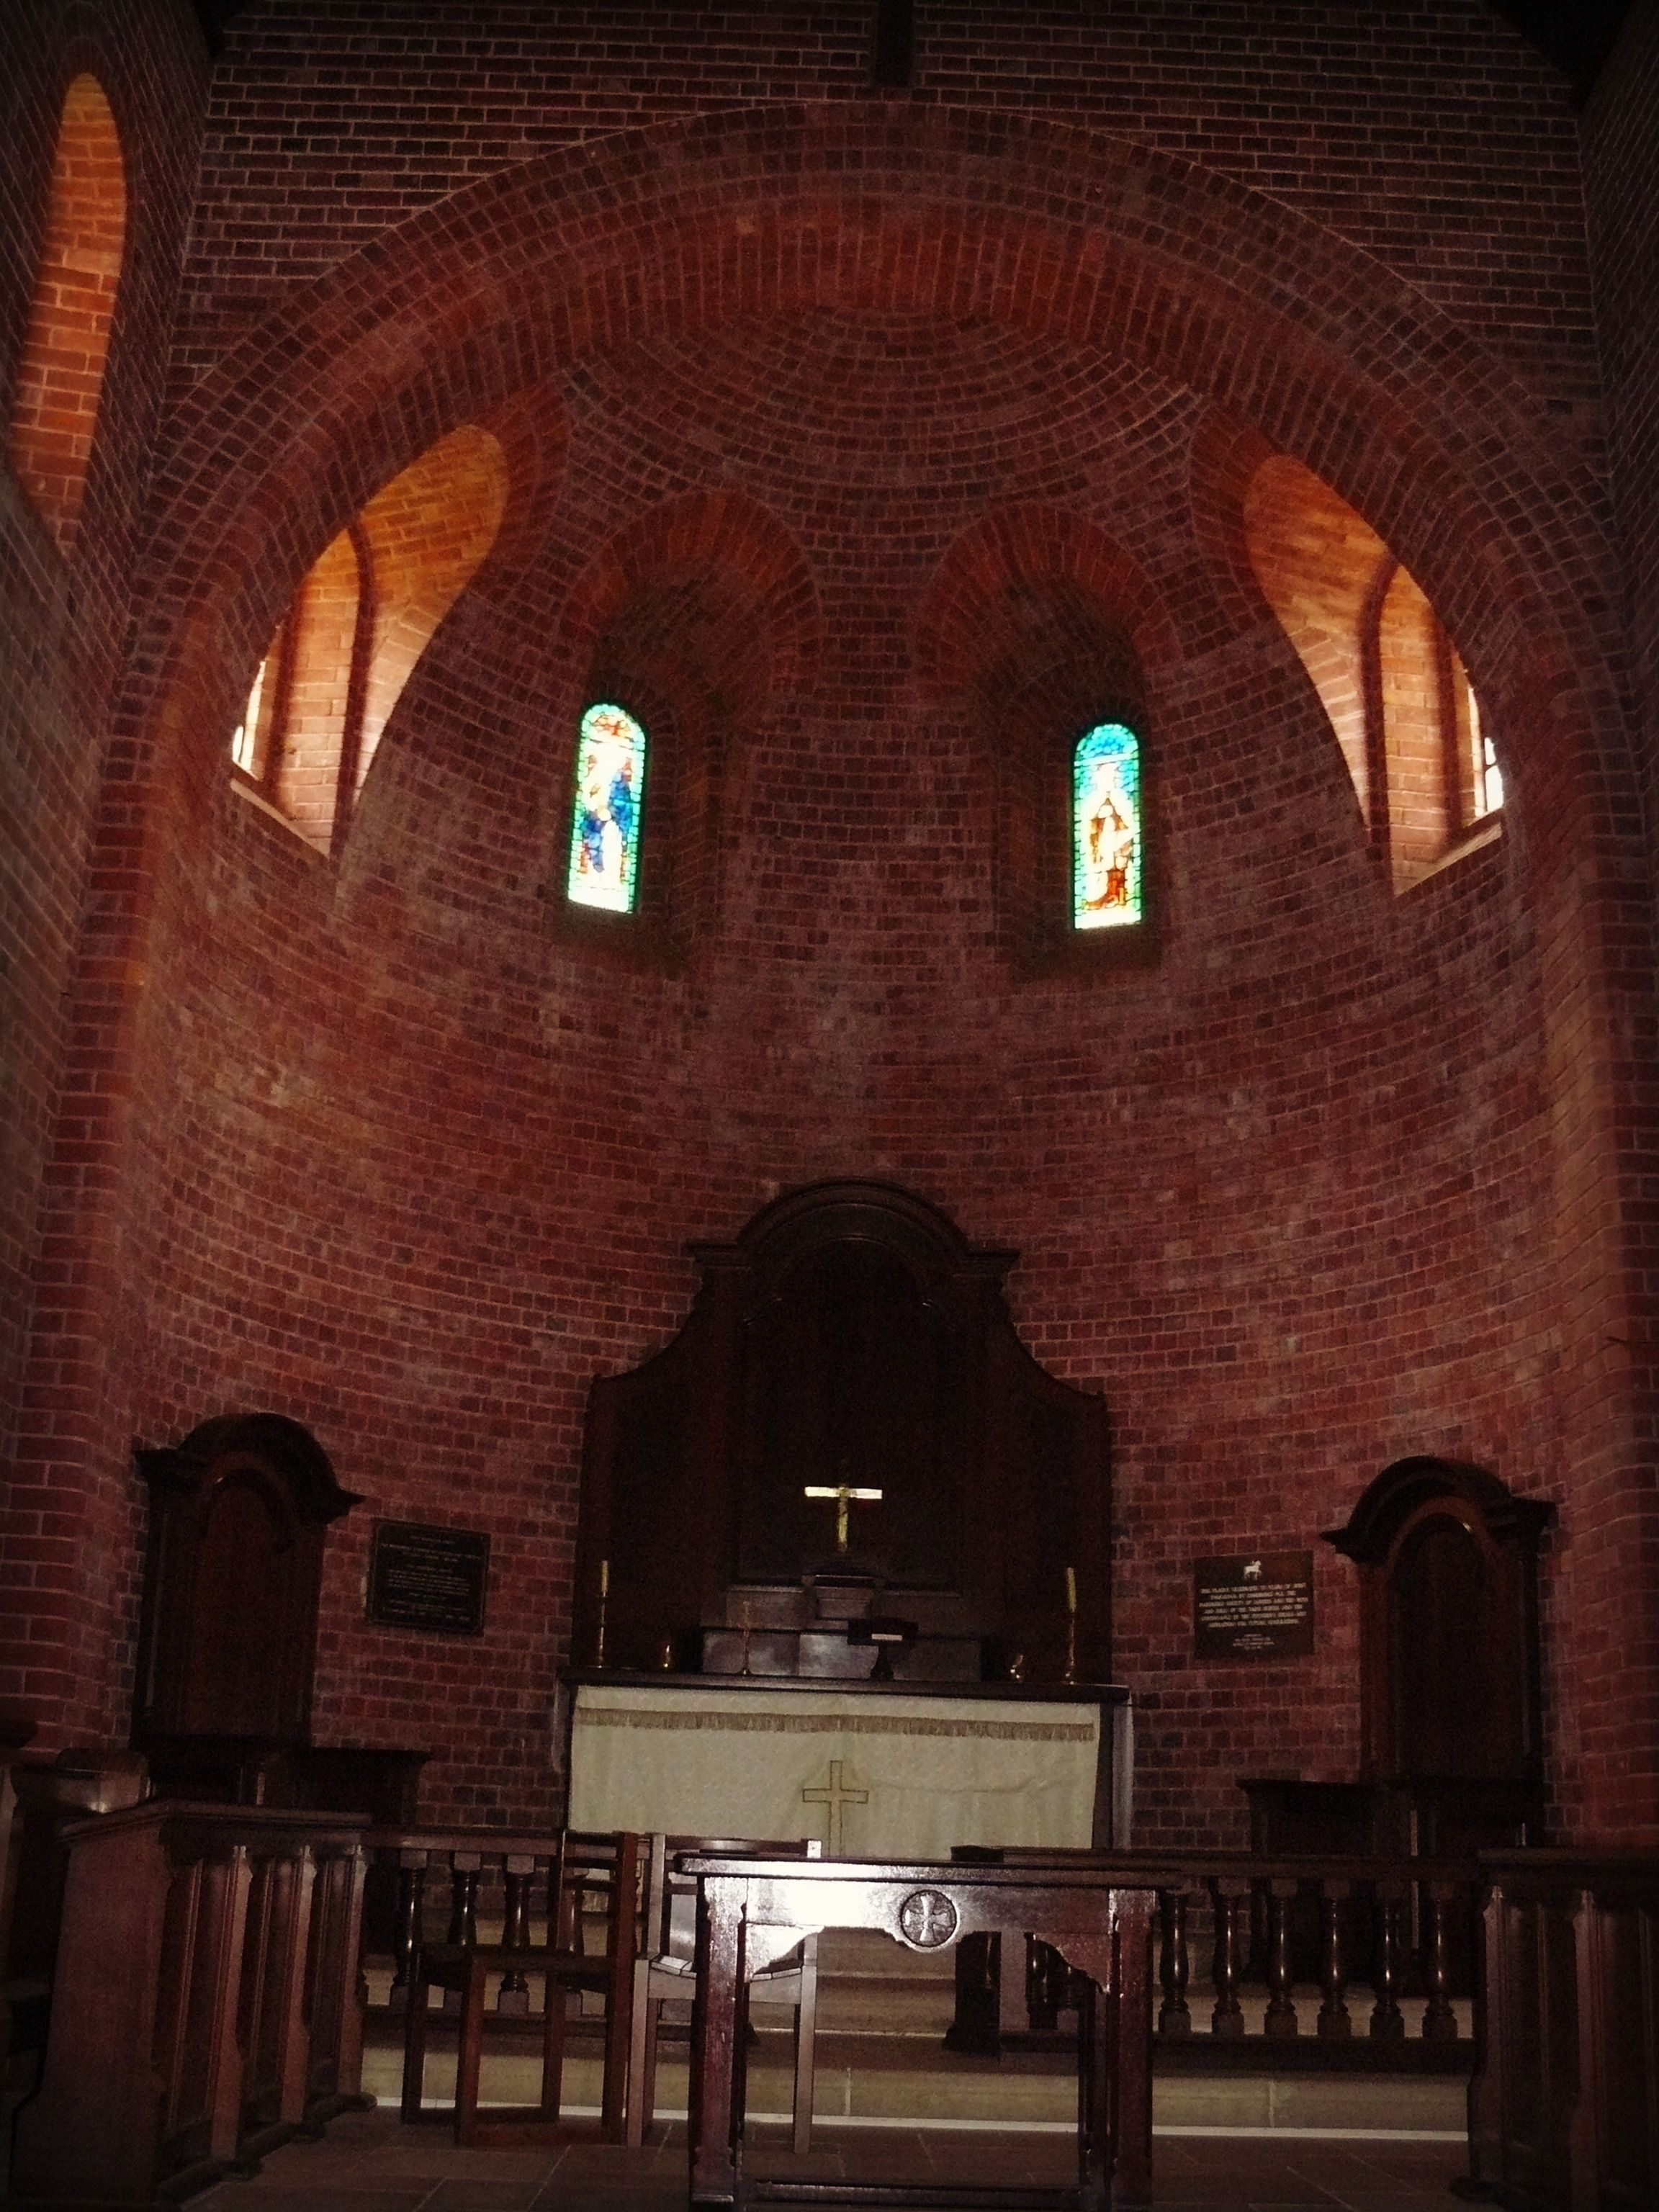 Full of amazing brick arches, this is the alter of the historic Fairbridge Memorial Chapel built in 1931